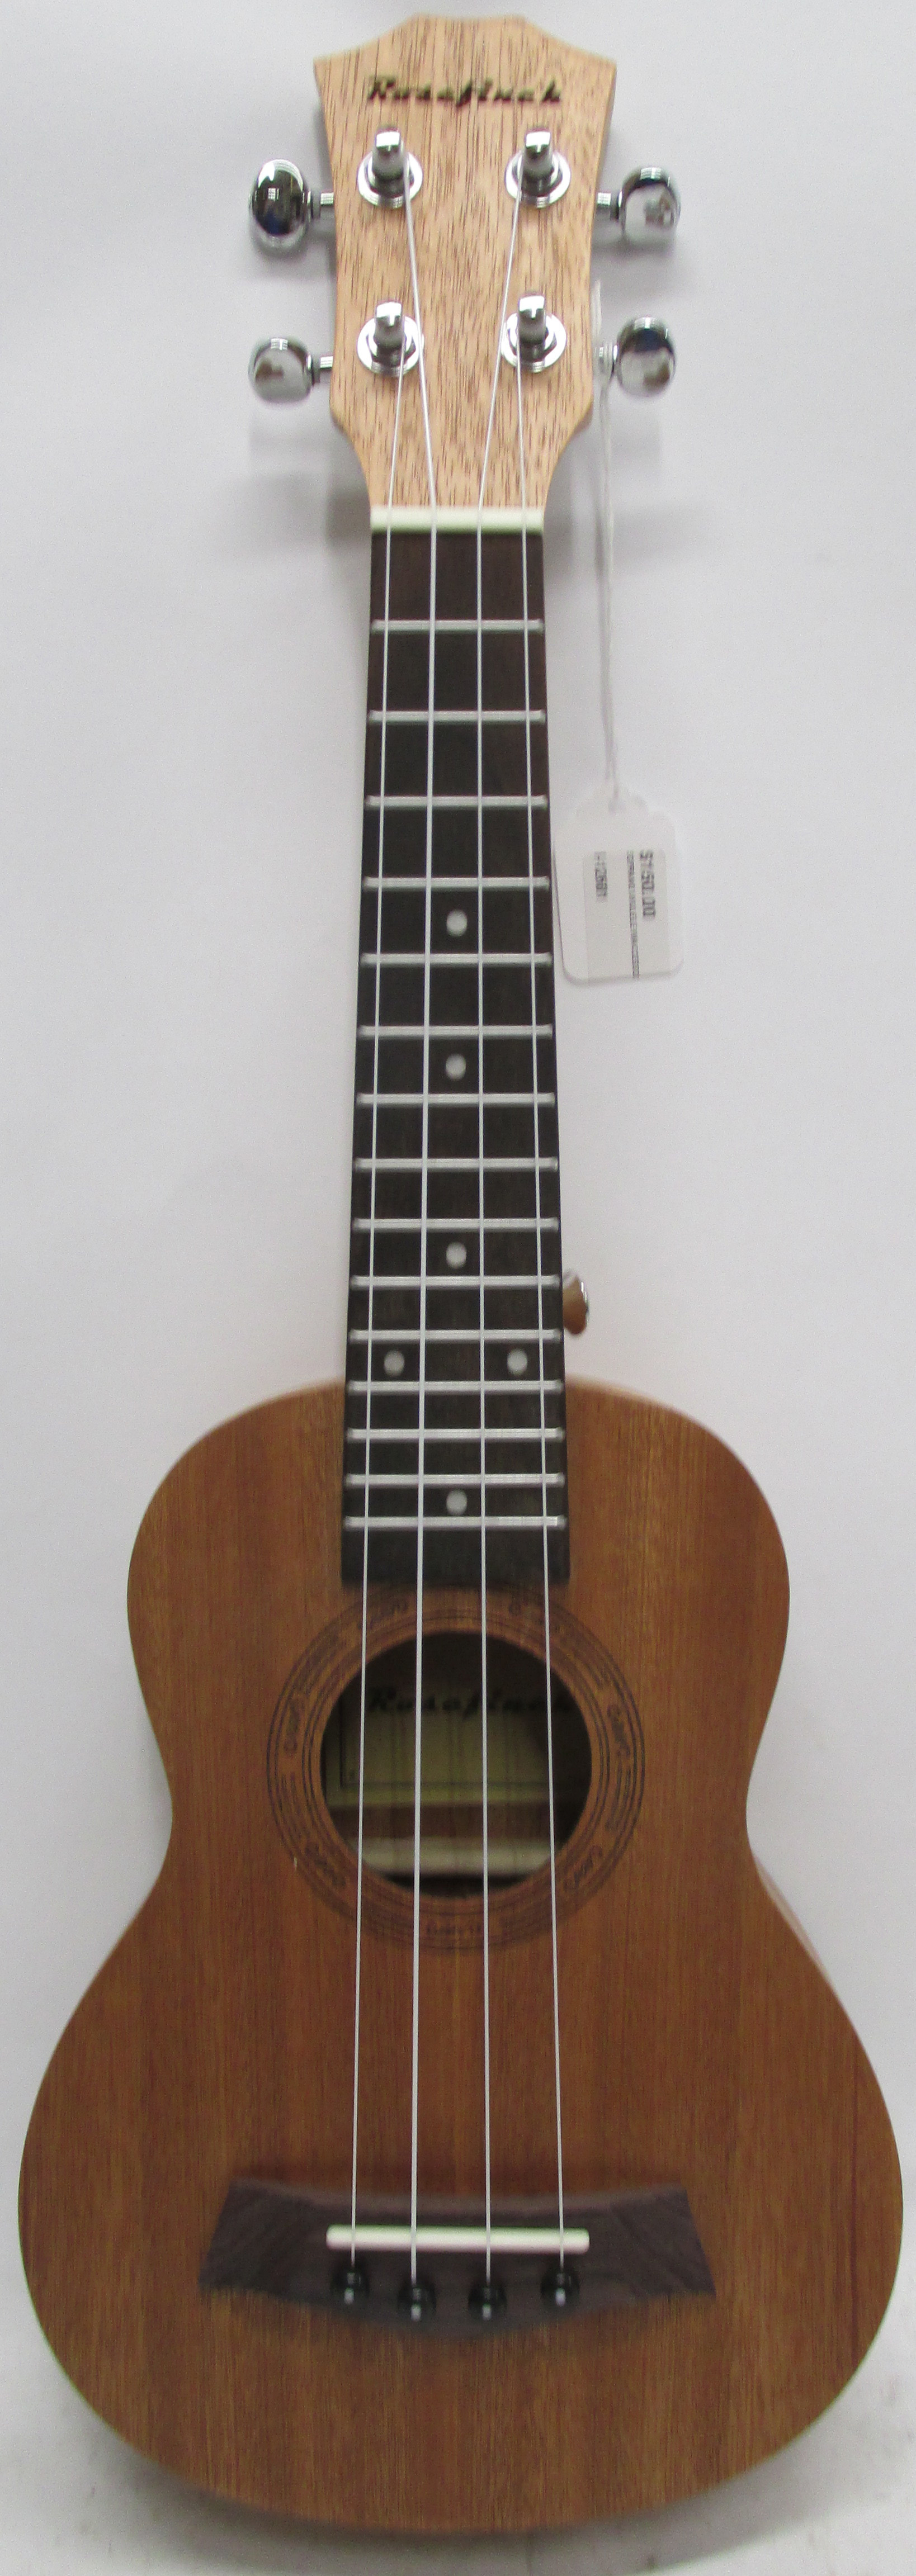 Rosefinch Soprano 4-String Ukulele with Accessories and Gig Bag